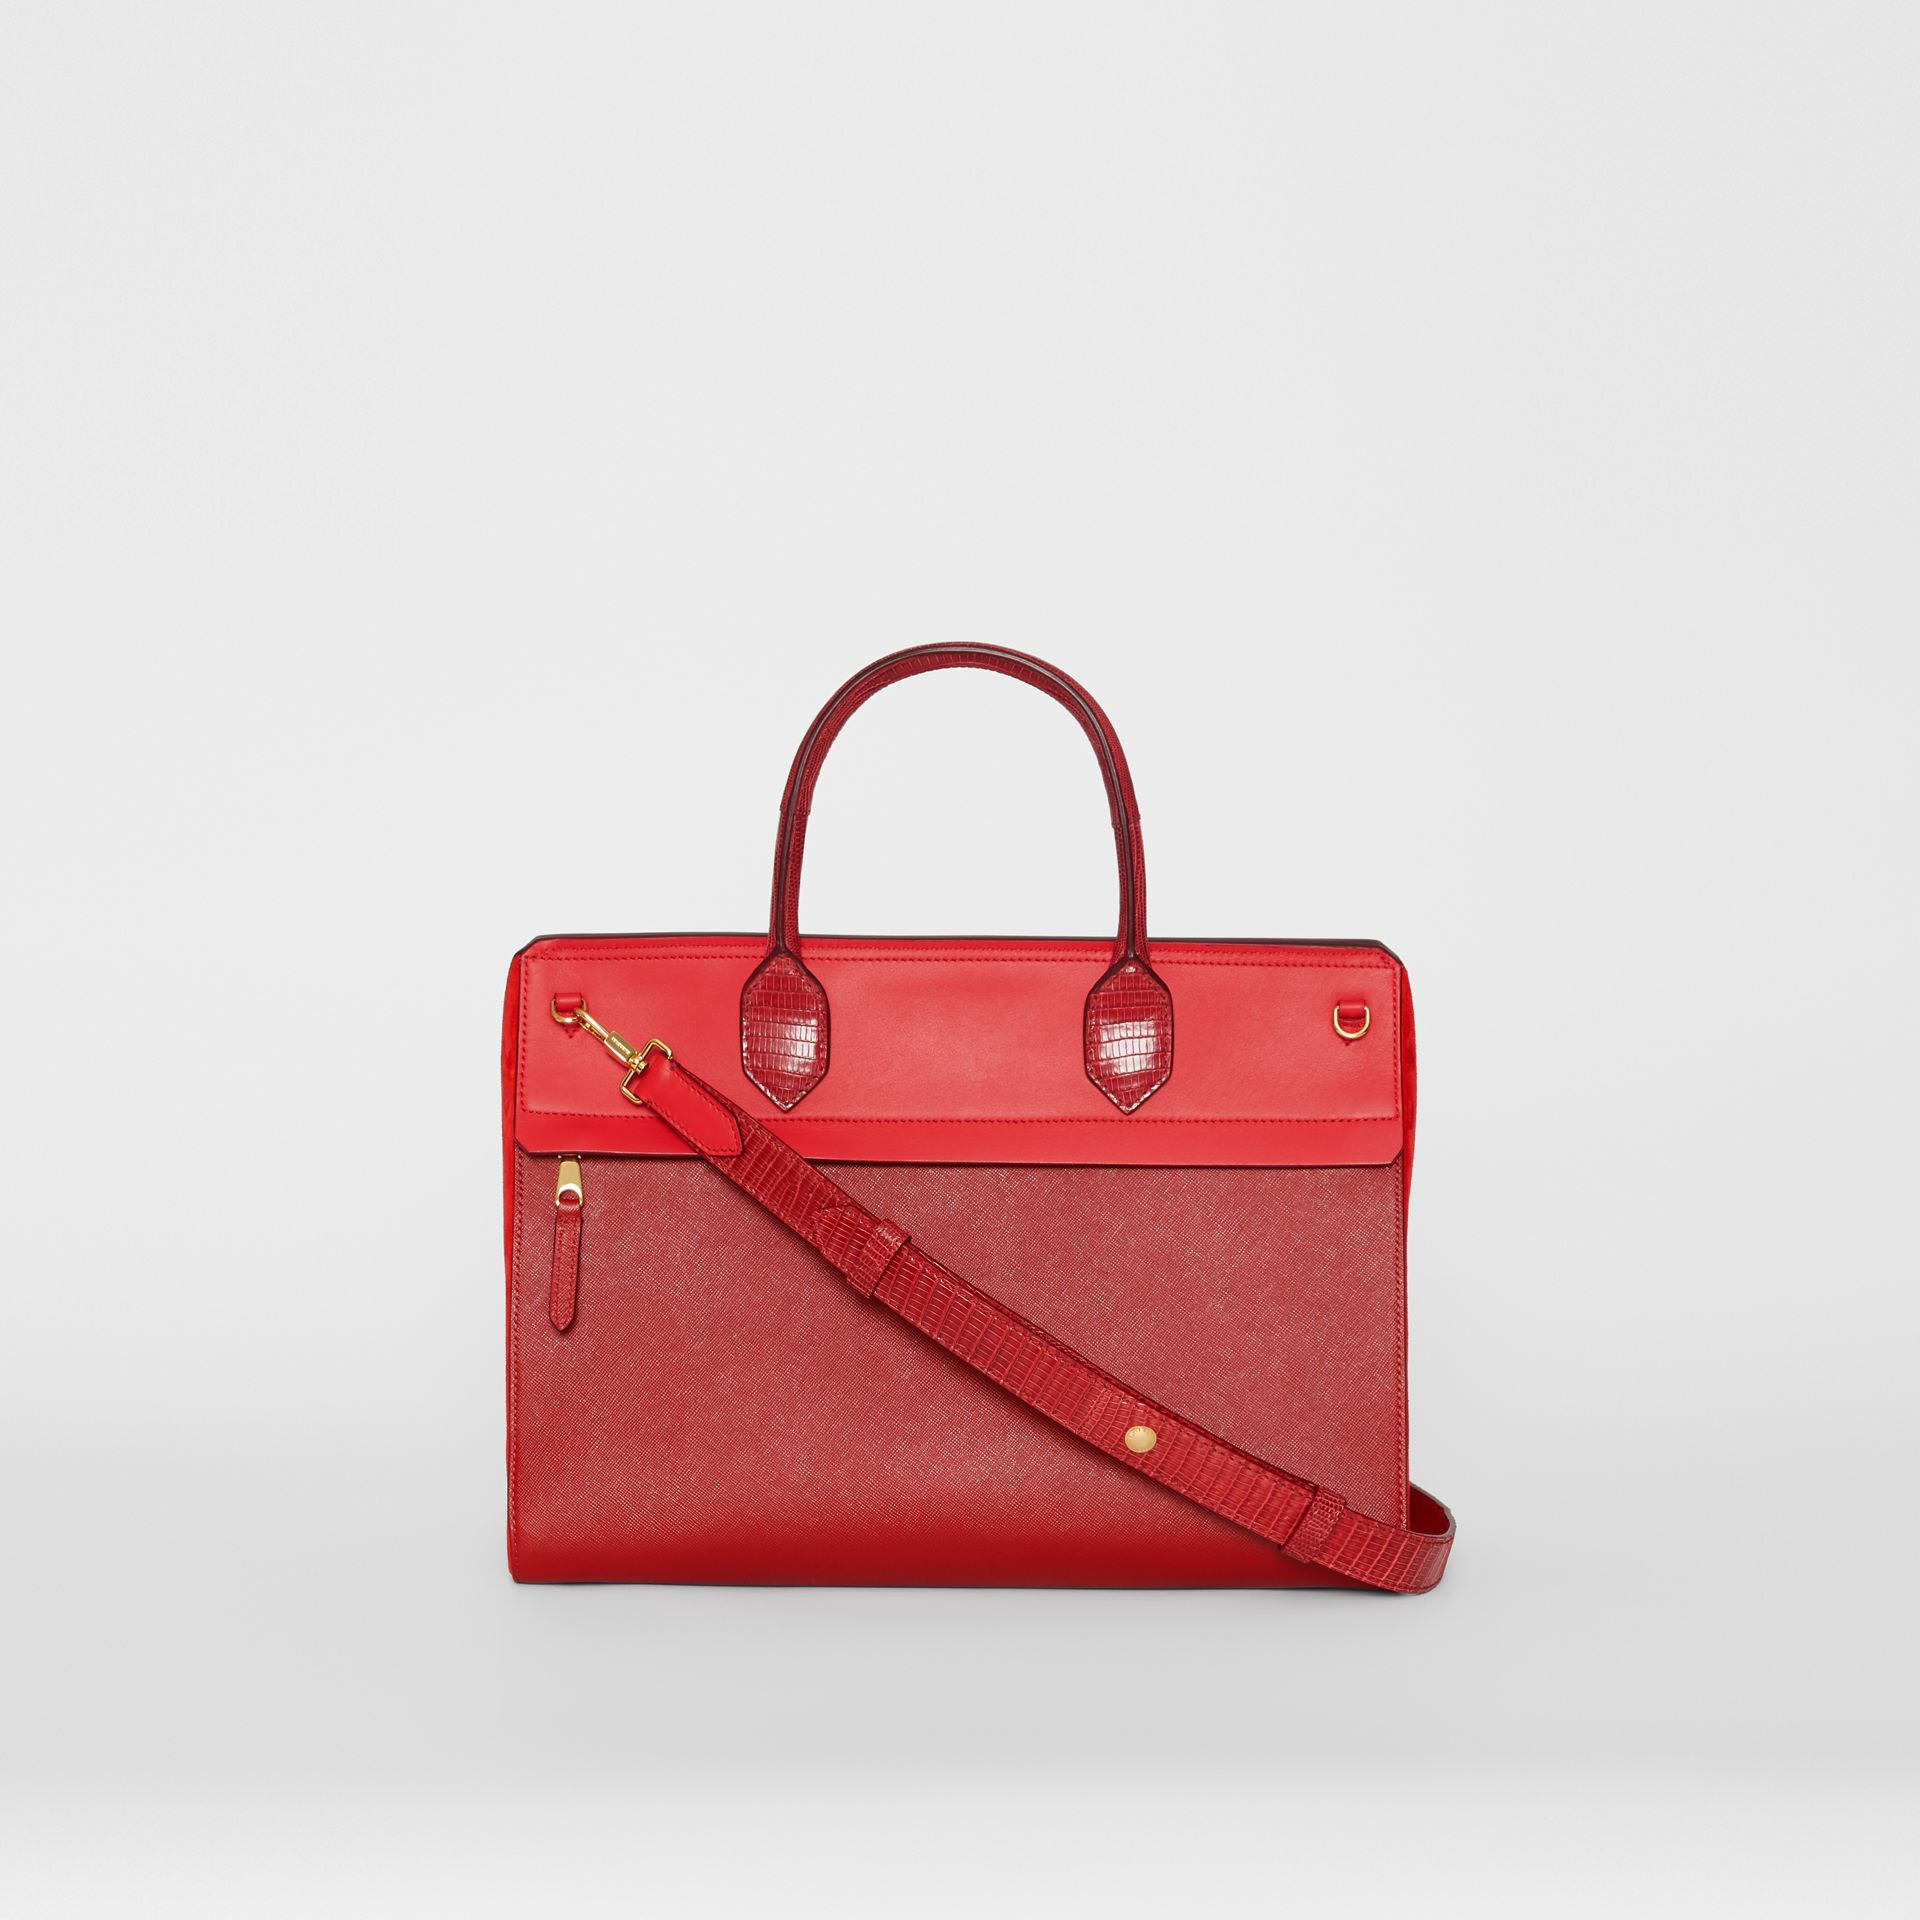 Small Leather and Suede Elizabeth Bag in Bright Military Red - Women | Burberry United Kingdom - gallery image 7